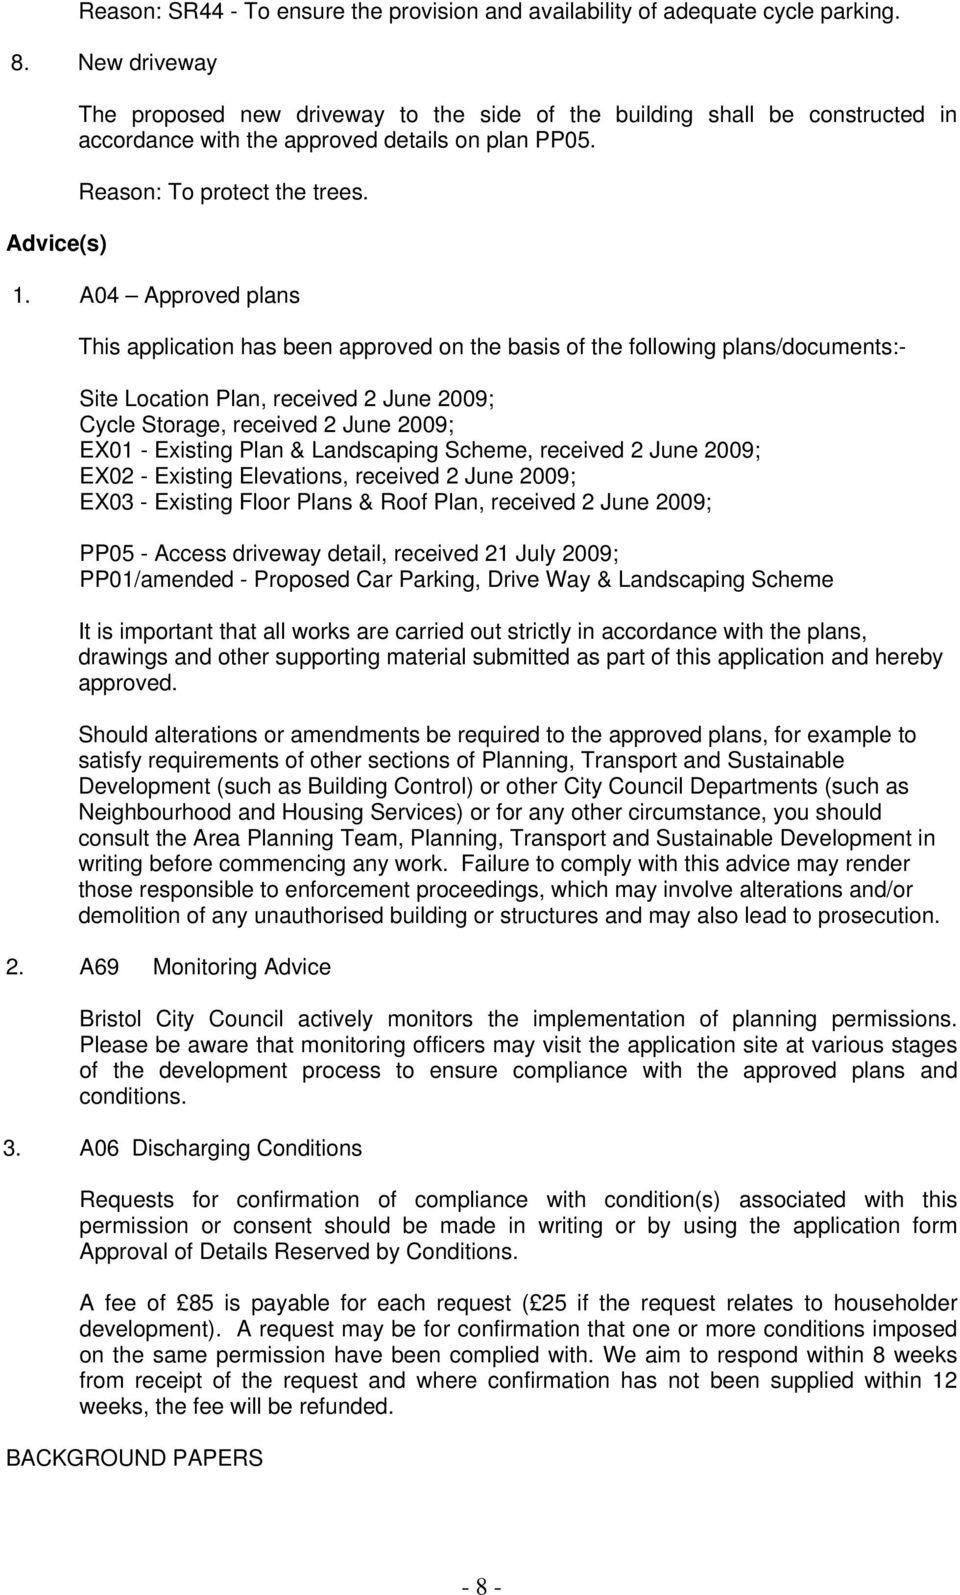 A04 Approved plans This application has been approved on the basis of the following plans/documents:- Site Location Plan, received 2 June 2009; Cycle Storage, received 2 June 2009; EX01 - Existing